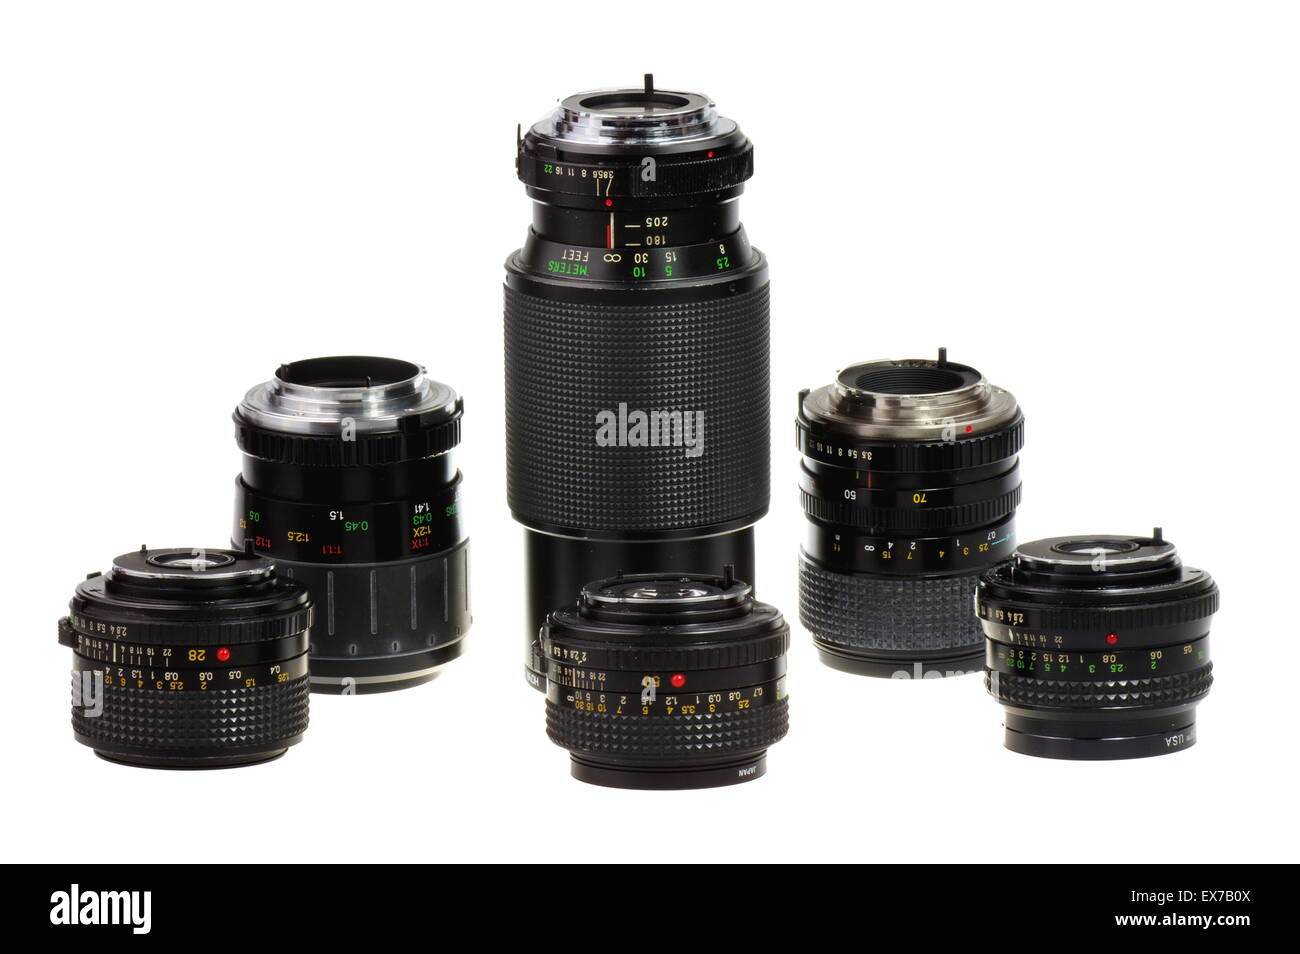 Old lens. Manual focus lenses for 135 format SLR camera a white background - isolated. - Stock Image